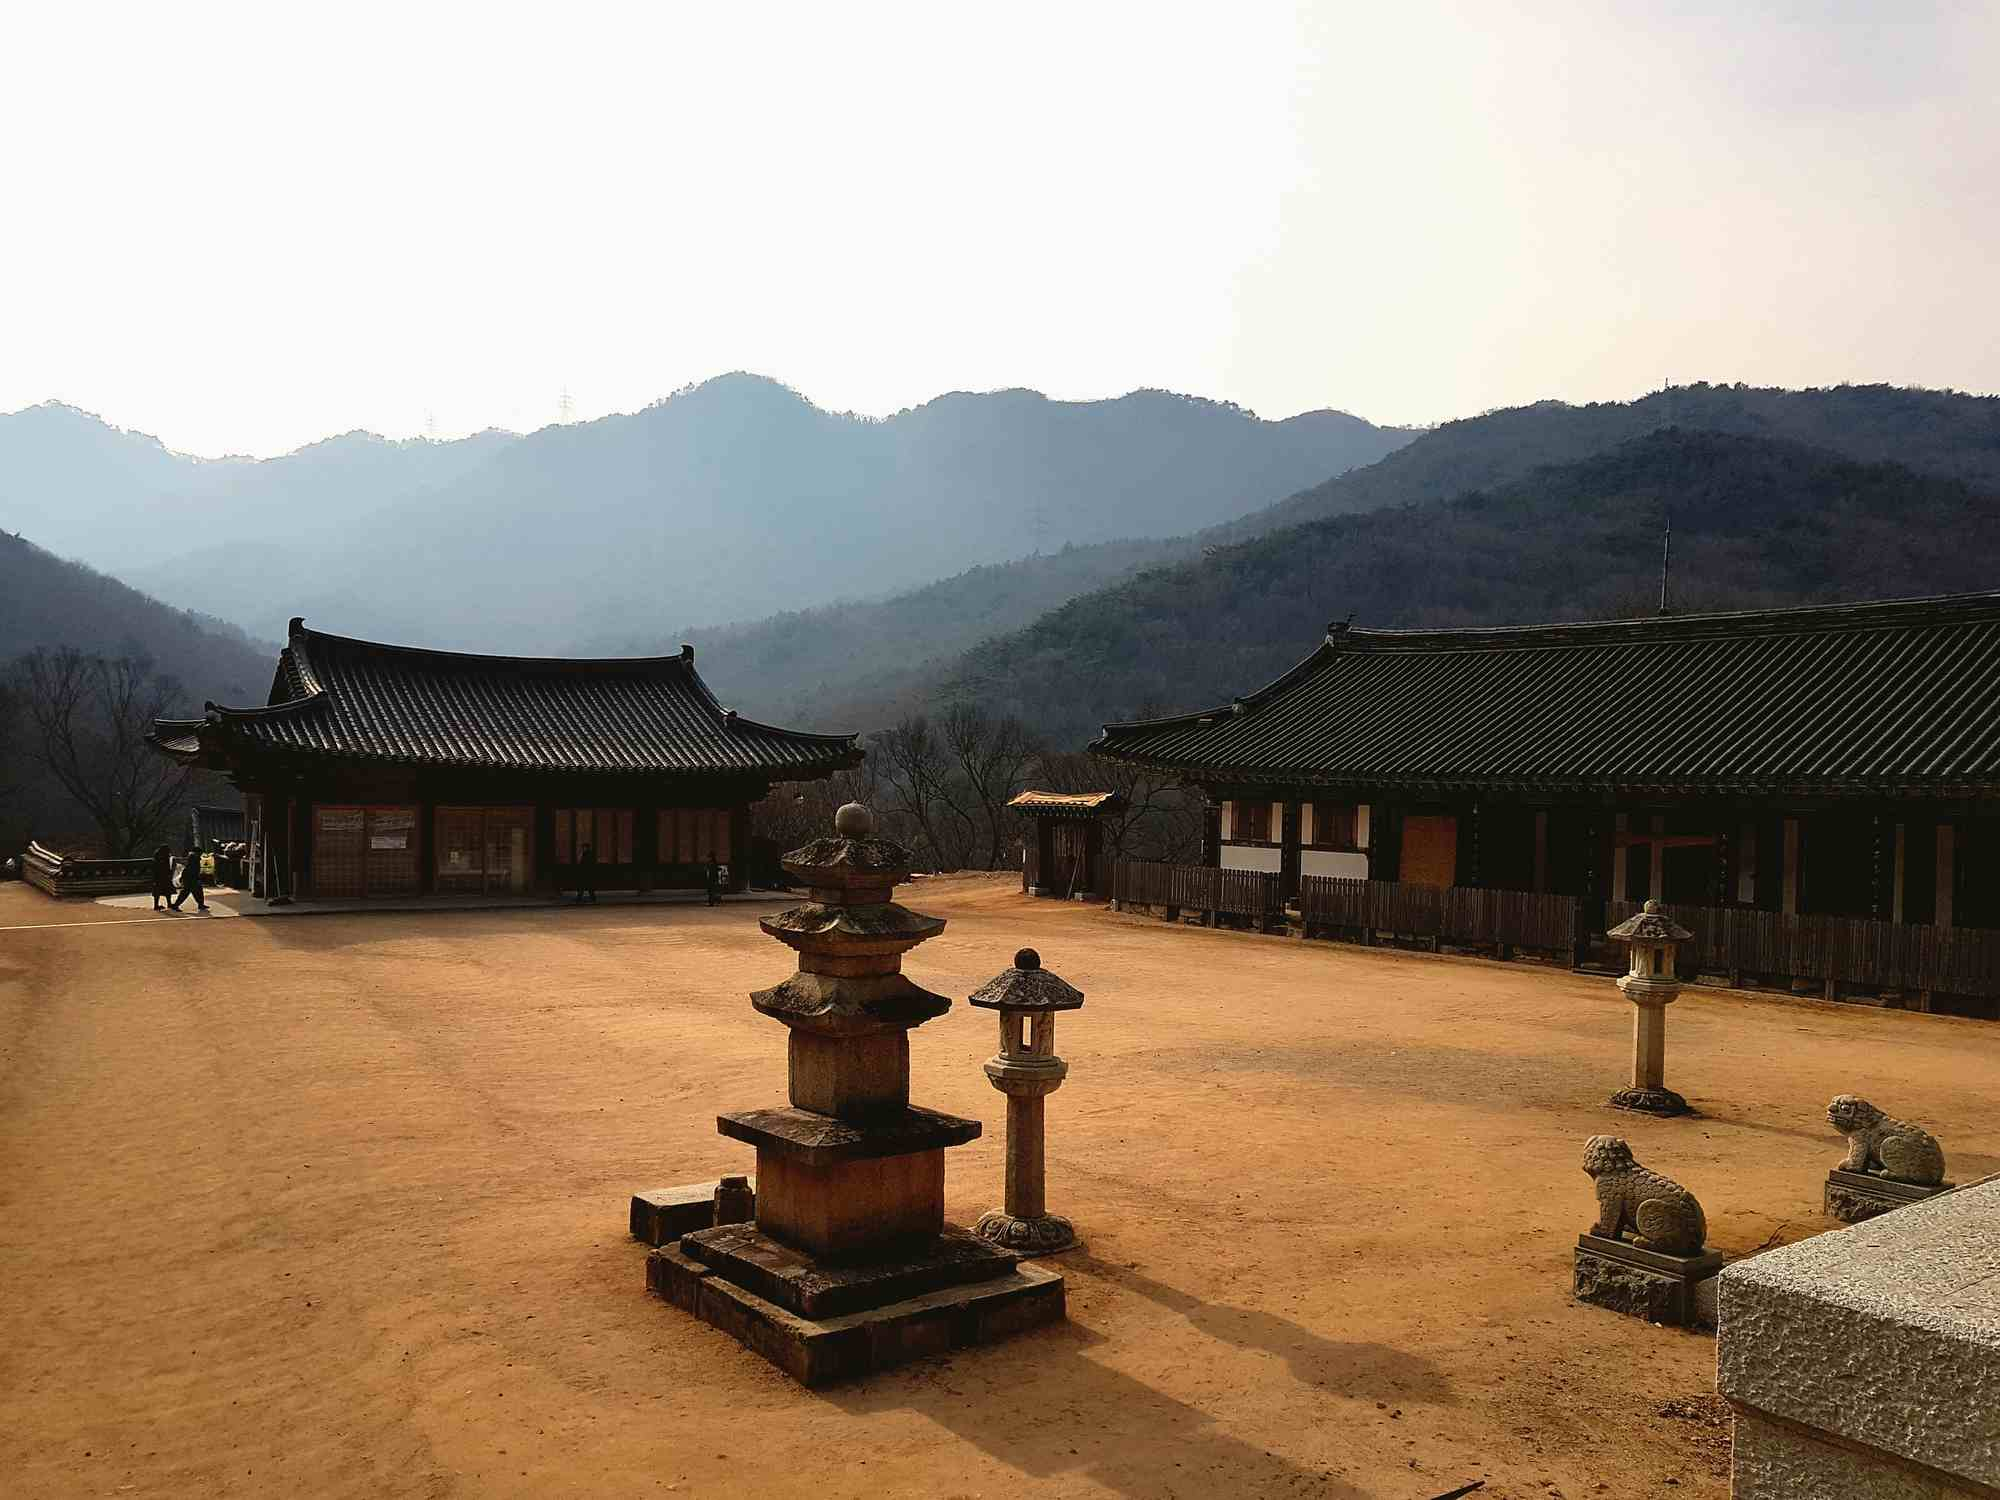 Exterior of traditional buildings in Chinhae